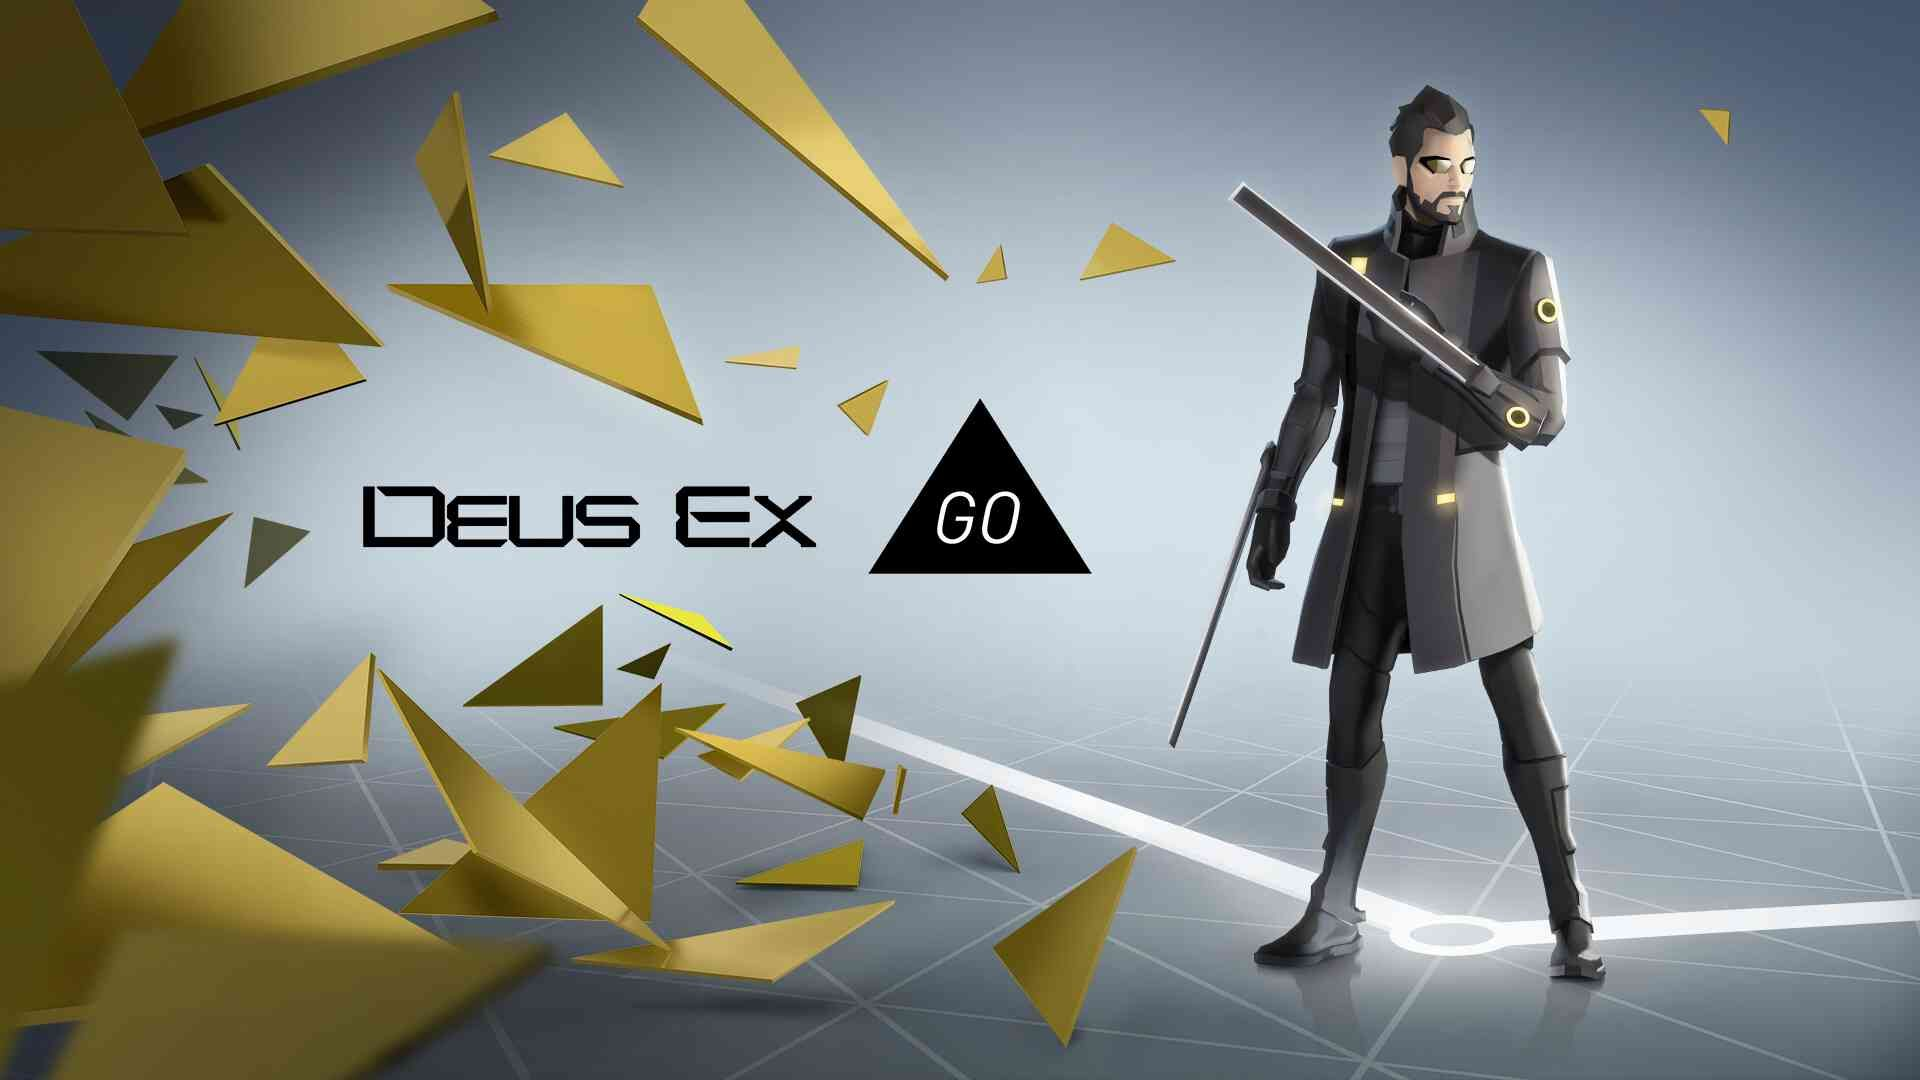 Deus Ex Go, arrives on the iPad puzzle version of one of